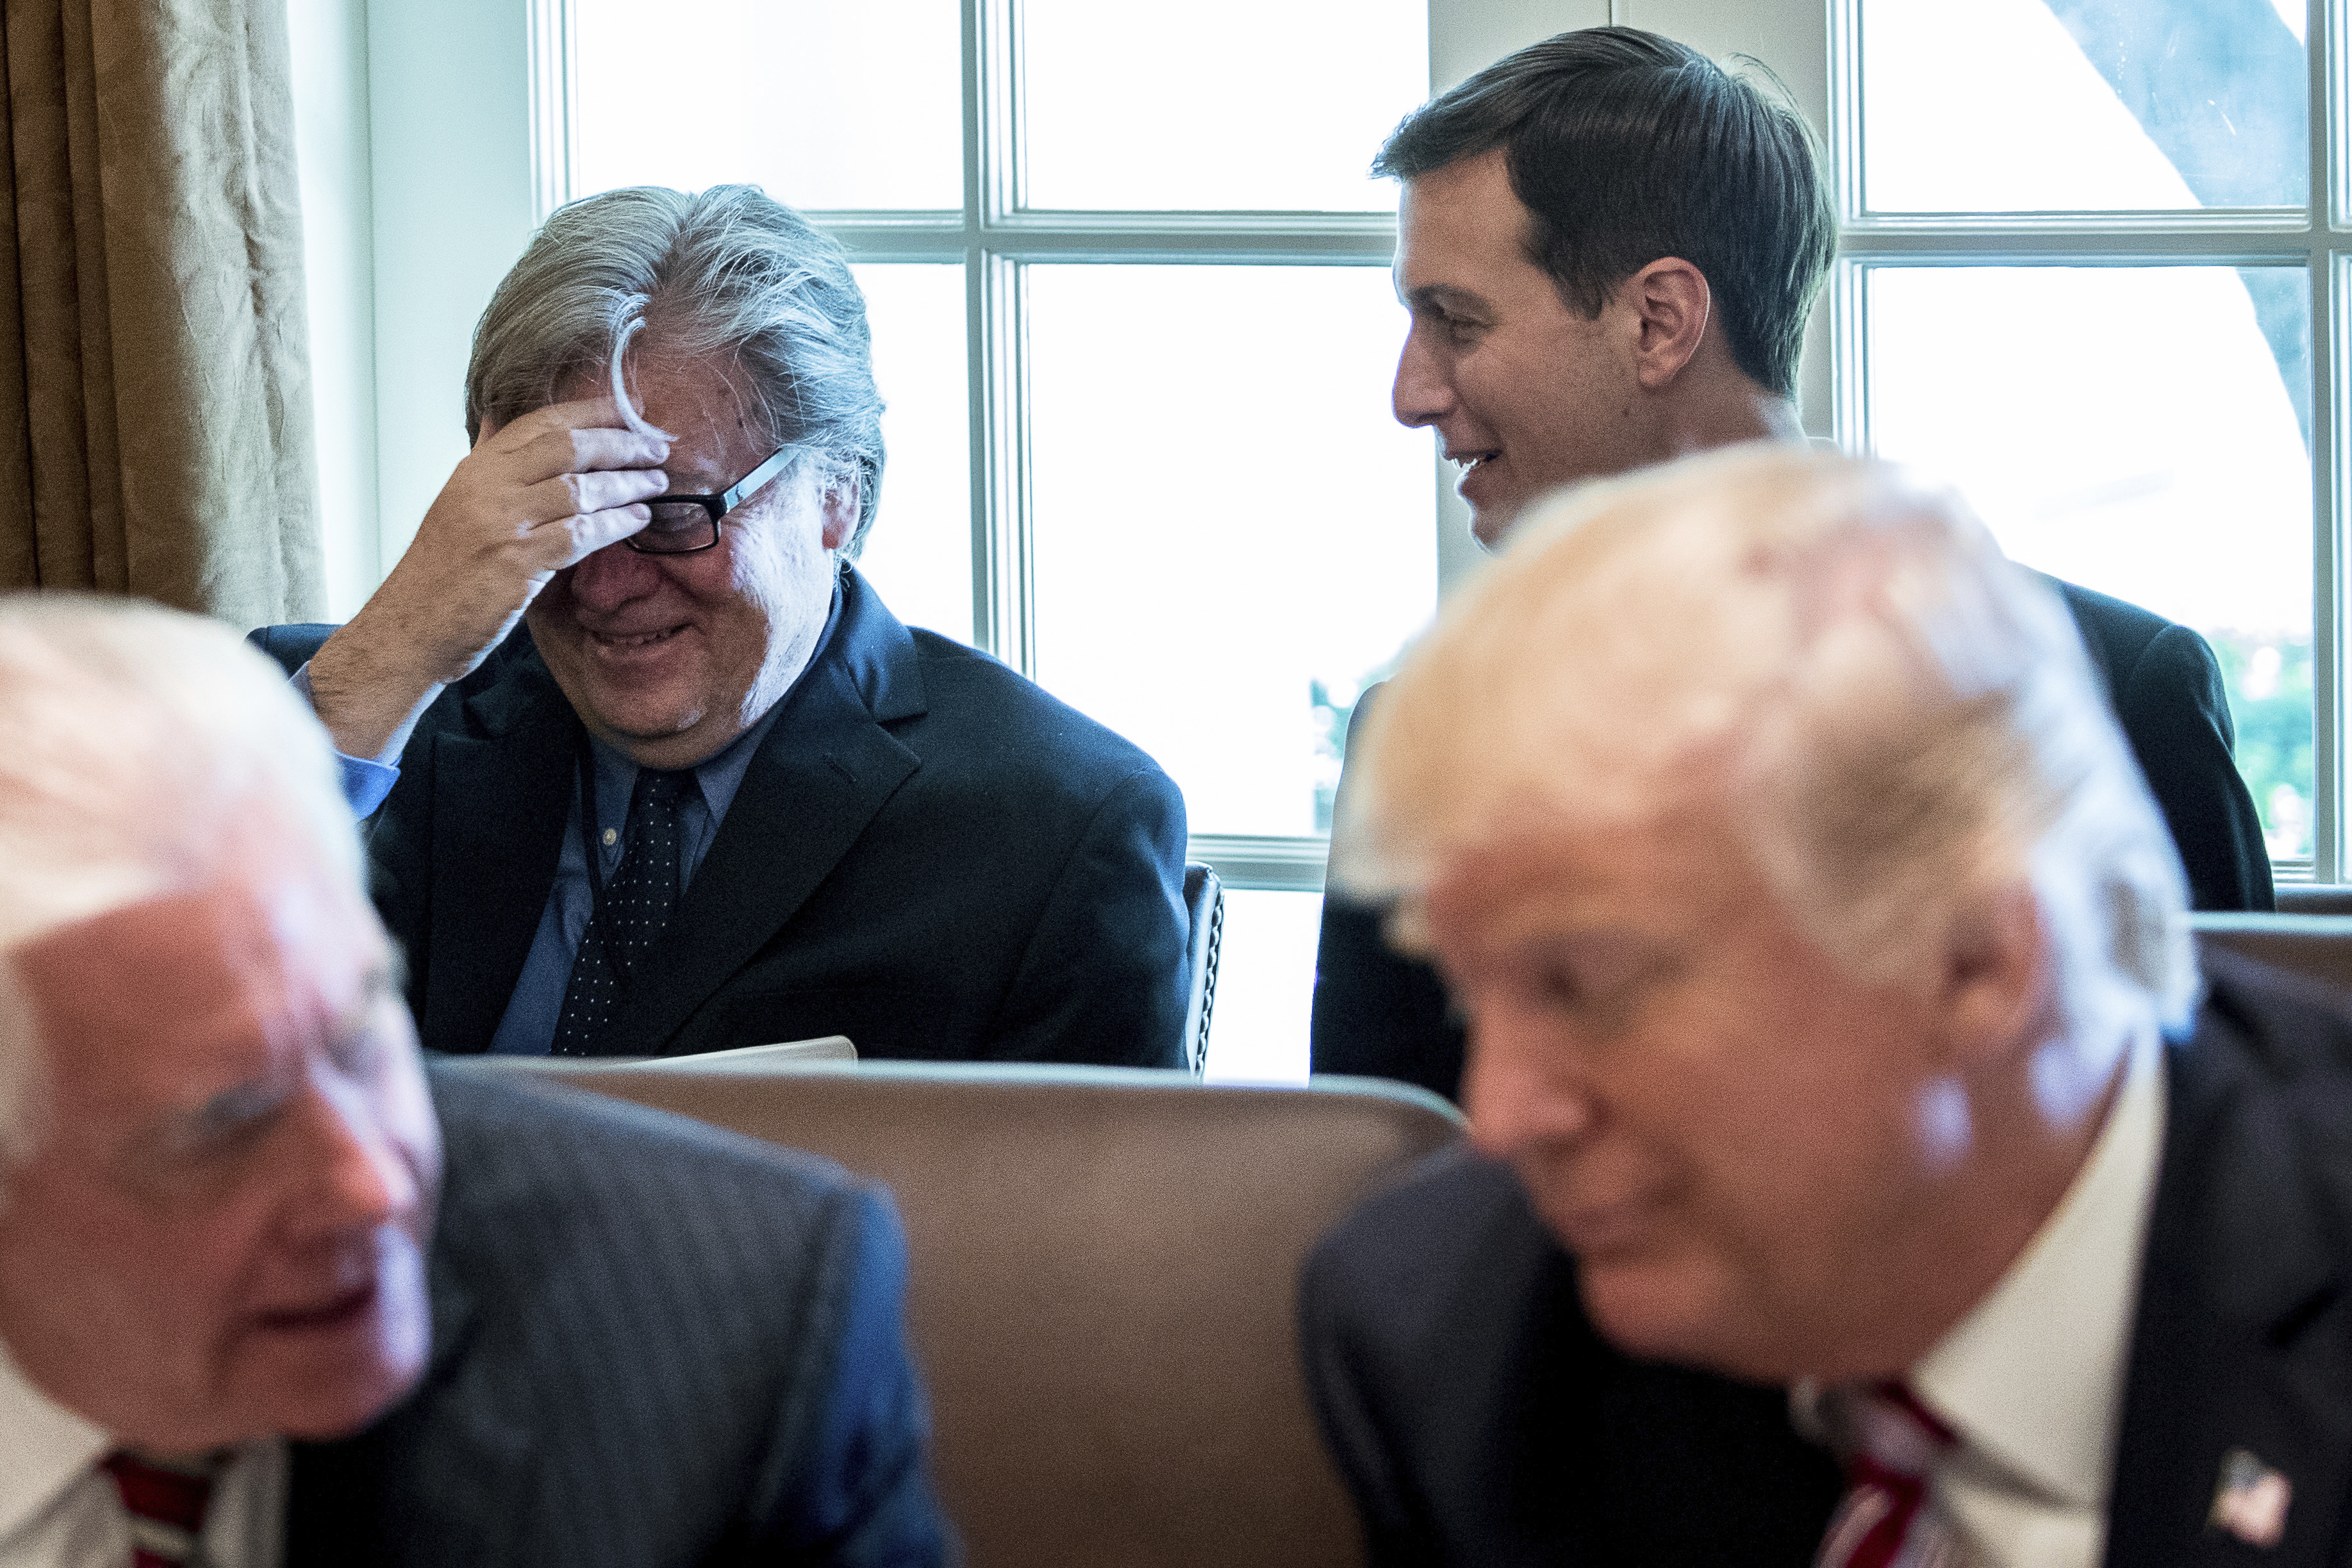 White House Senior Advisers Steve Bannon and Jared Kushner talk behind President Donald Trump and Secretary of State Rex Tillerson during a Cabinet meeting, Monday, June 12, 2017, in the Cabinet Room of the White House in Washington. (AP Photo/Andrew Harnik)